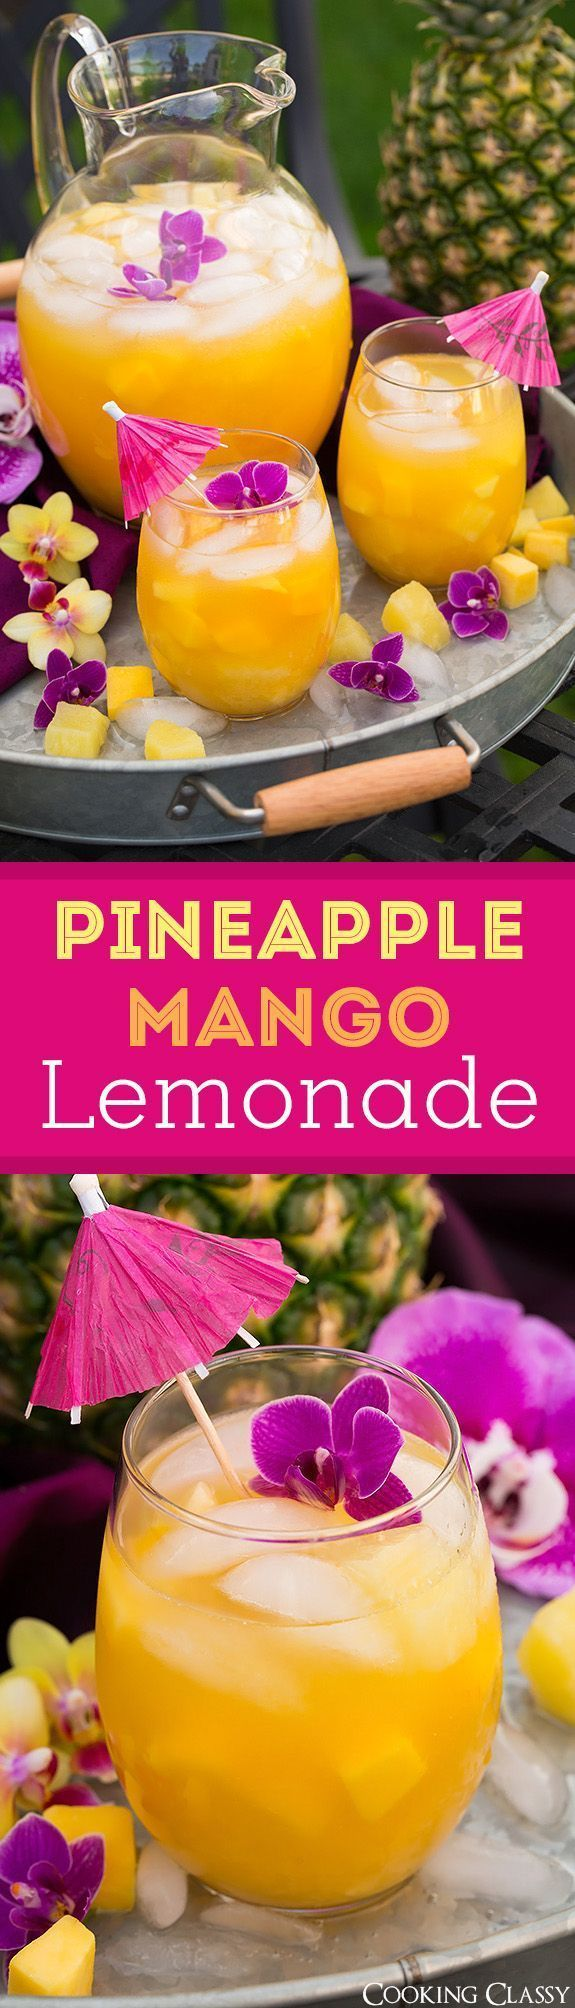 Pineapple Mango Lemonade seriously refreshing on a hot summer day! Love this t